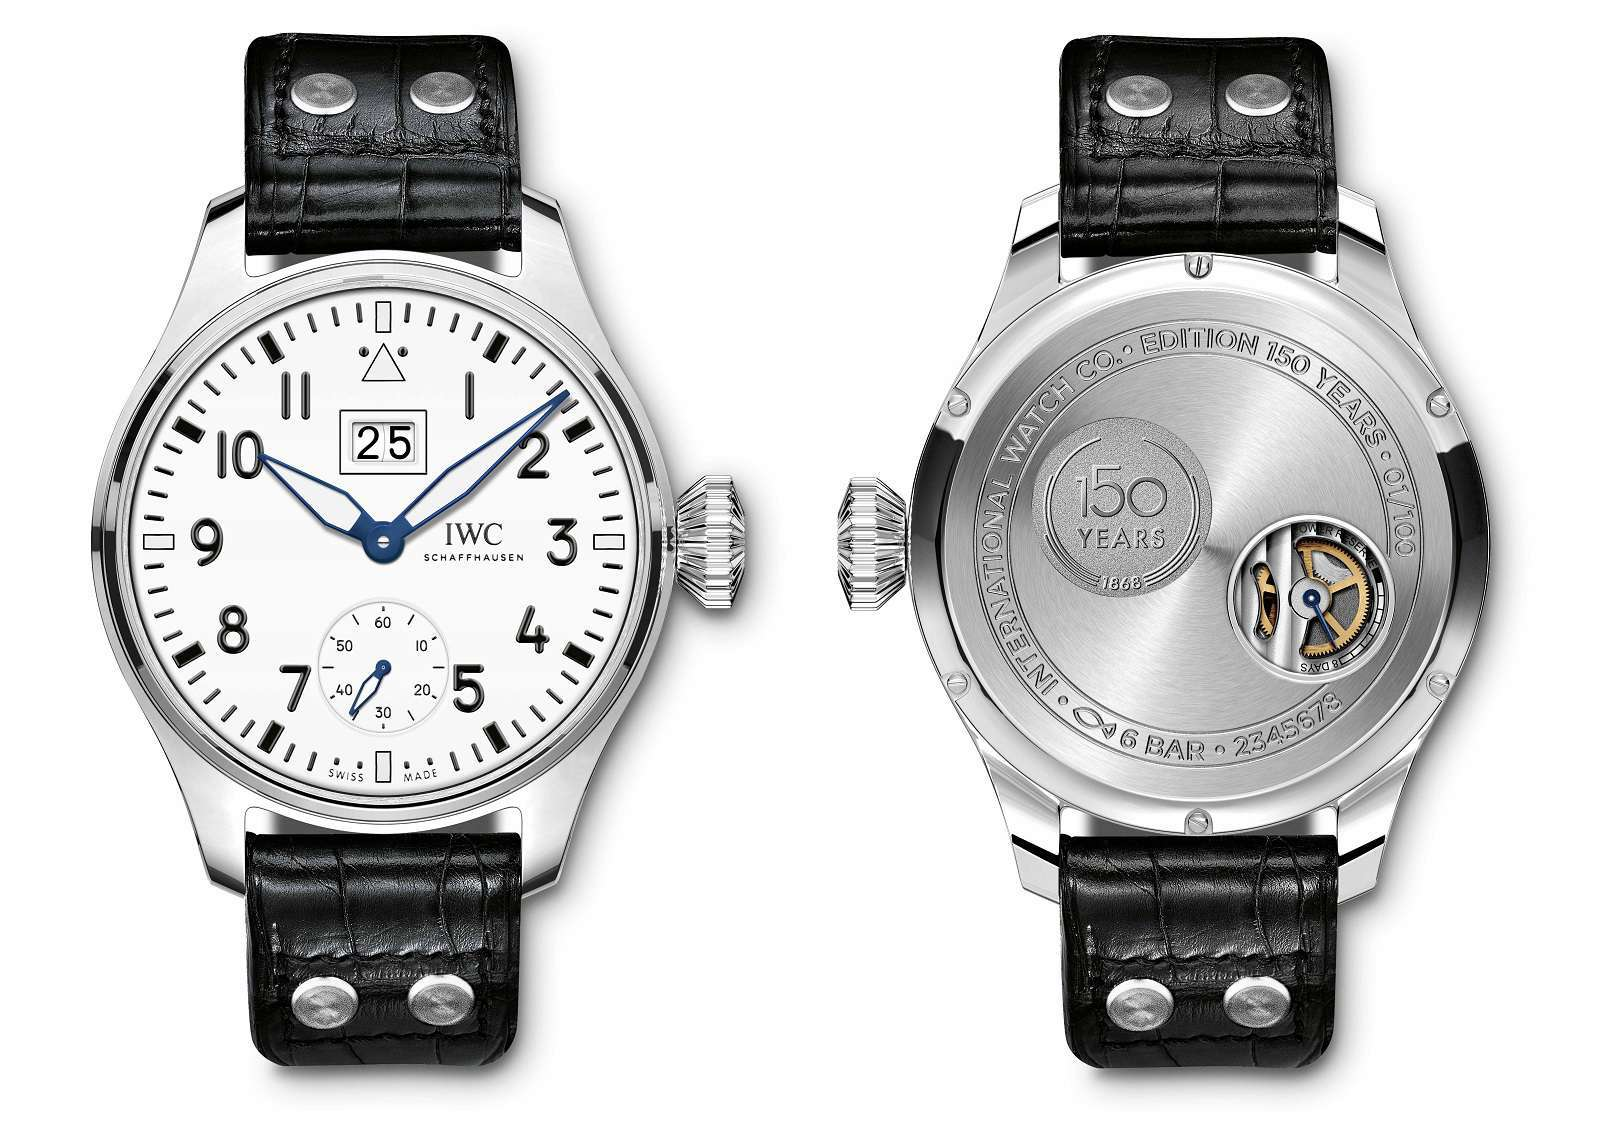 IWC Schaffhausen Big Pilot's Watch Big Date Edition 150 Years white dial and caseback